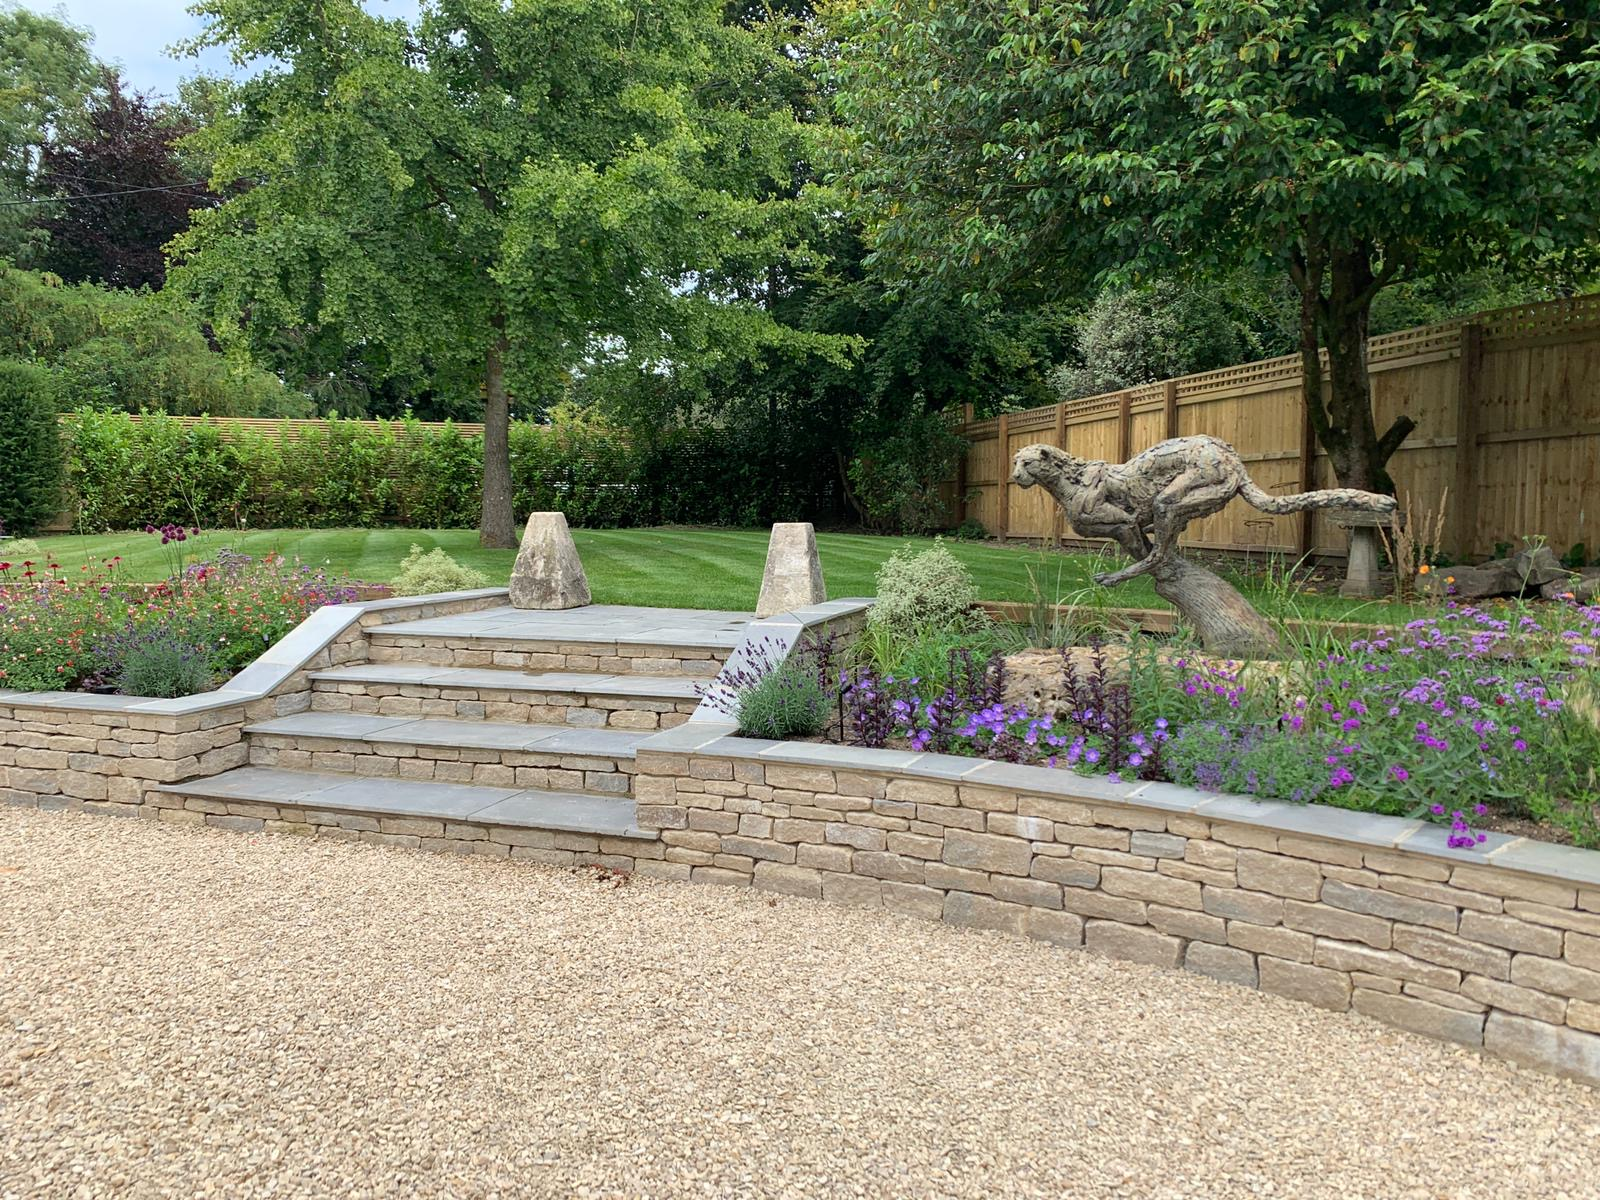 Gravel drive and stone steps